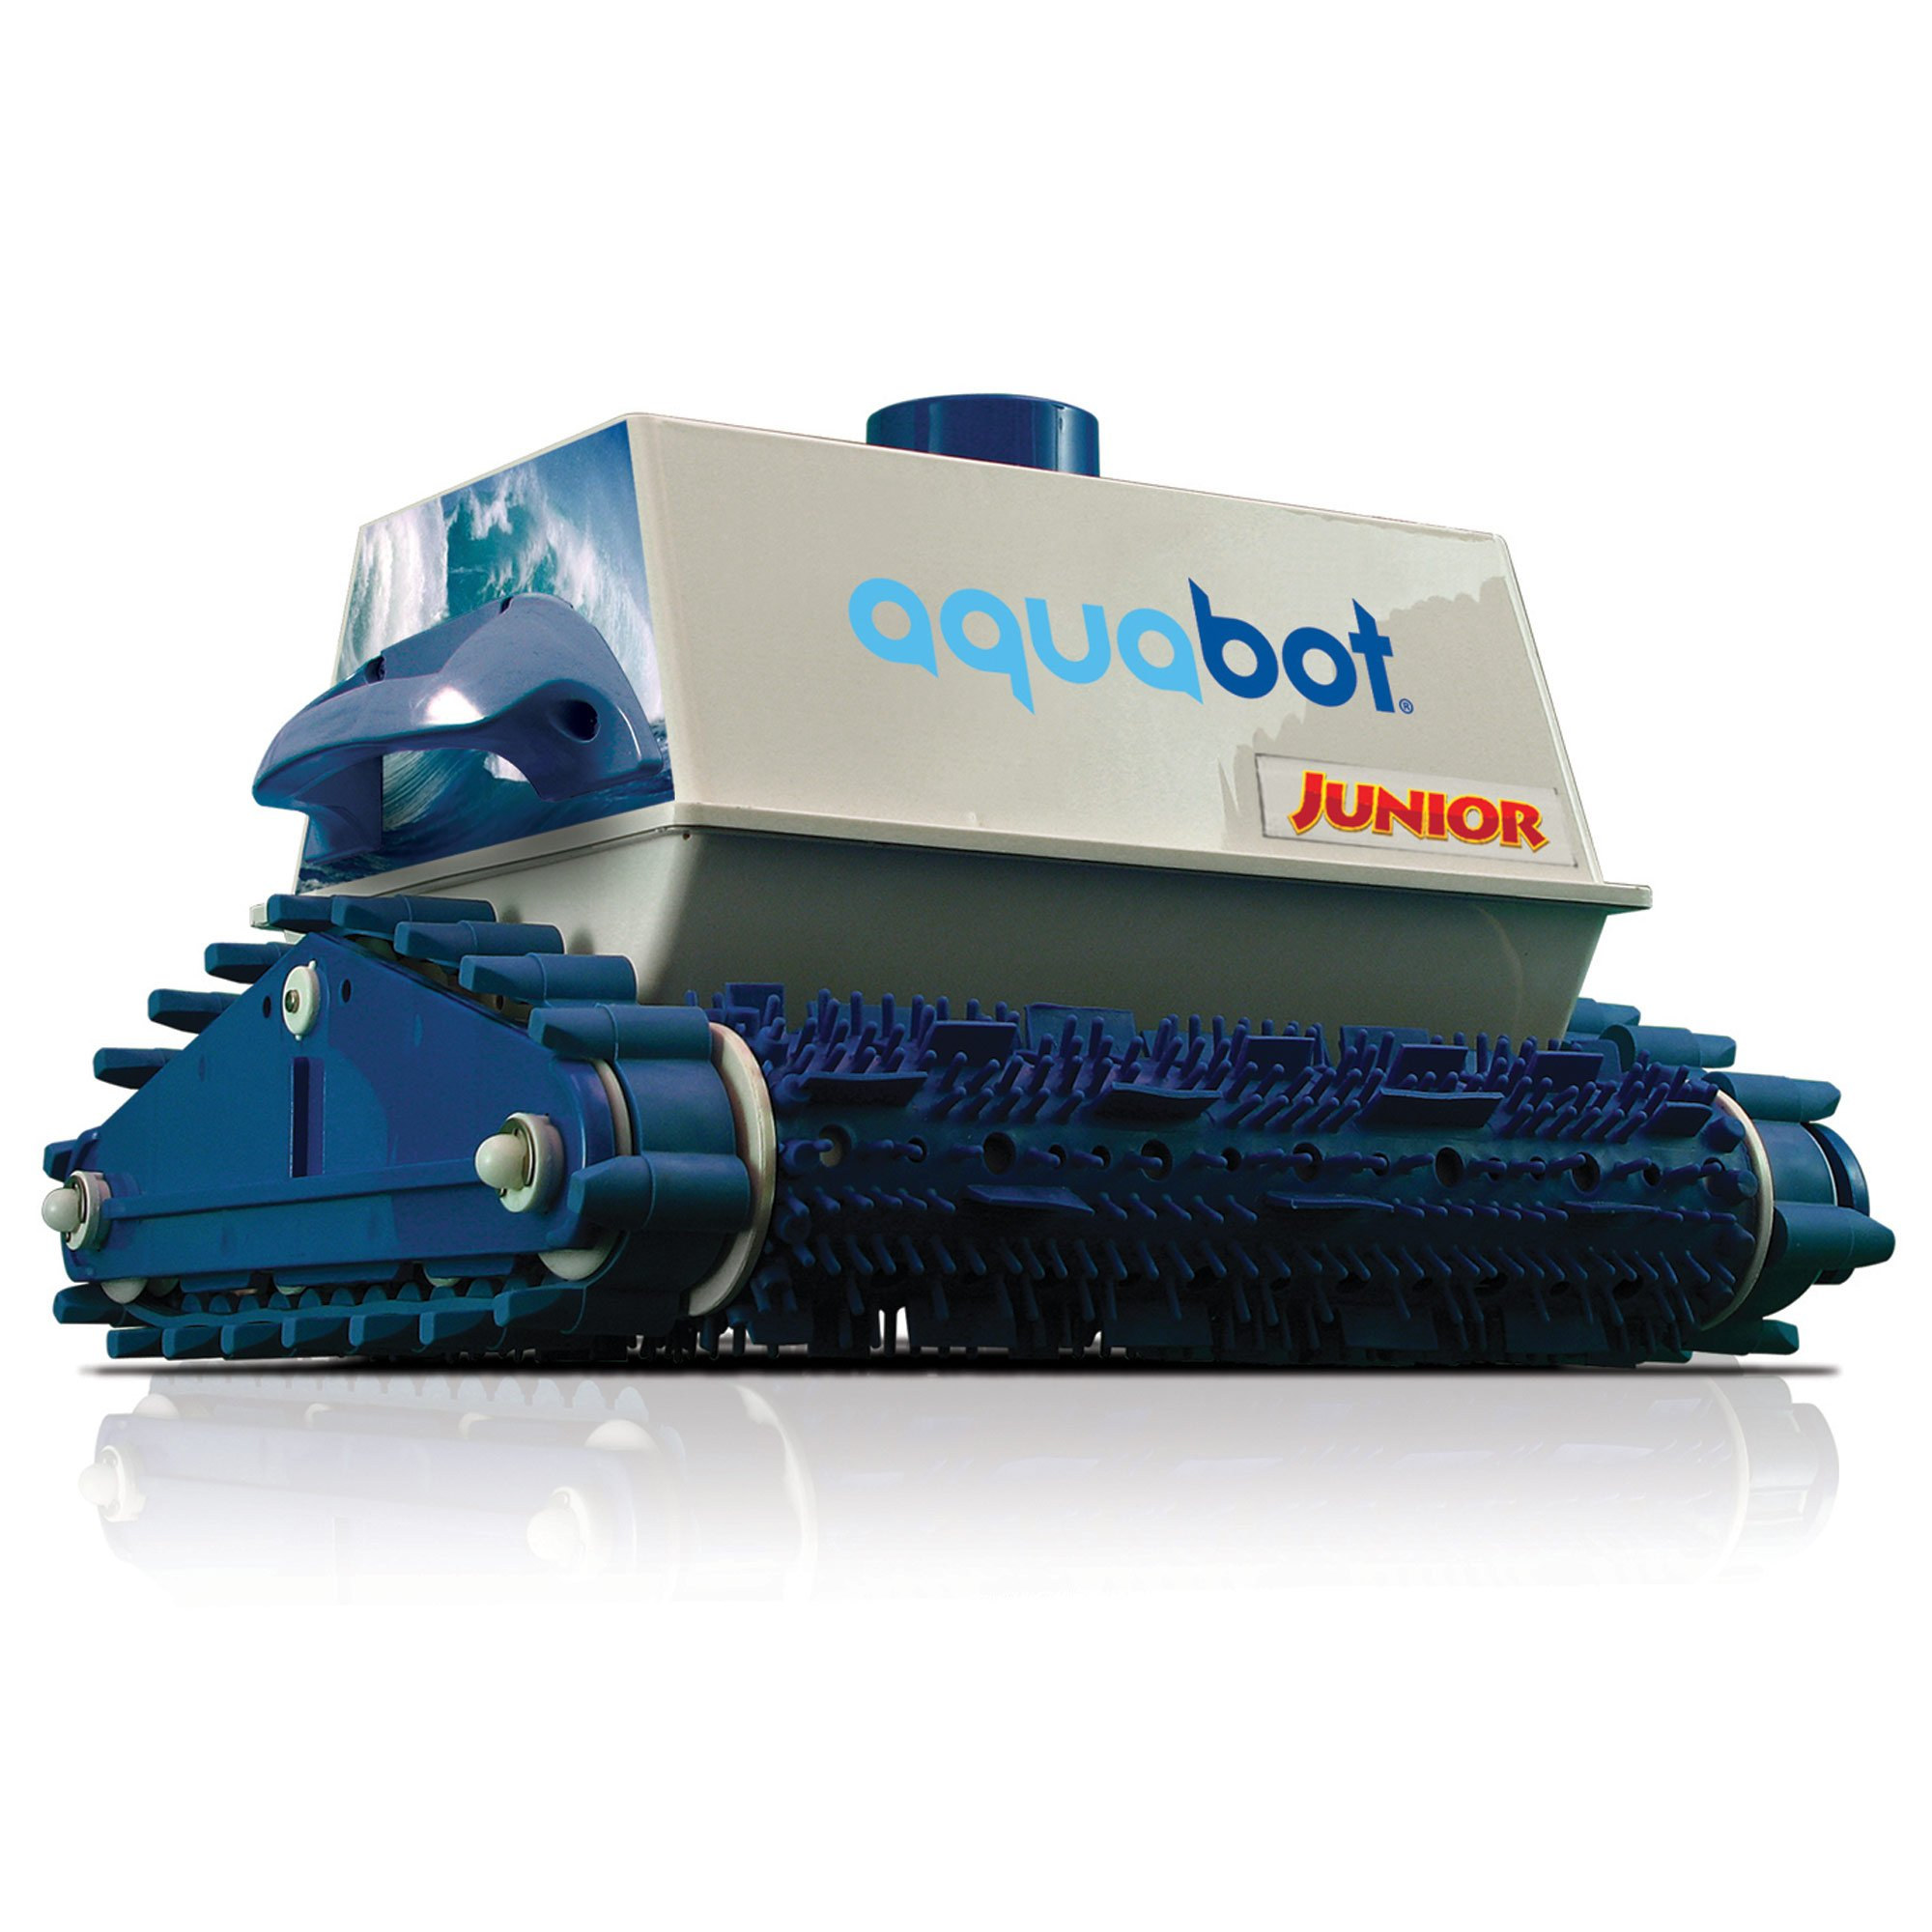 AQUA PRODUCTS INC. Aquabot Junior Robotic In Ground Pool Cleaner w/Extra Replacement Filter Bag by AQUA PRODUCTS INC.